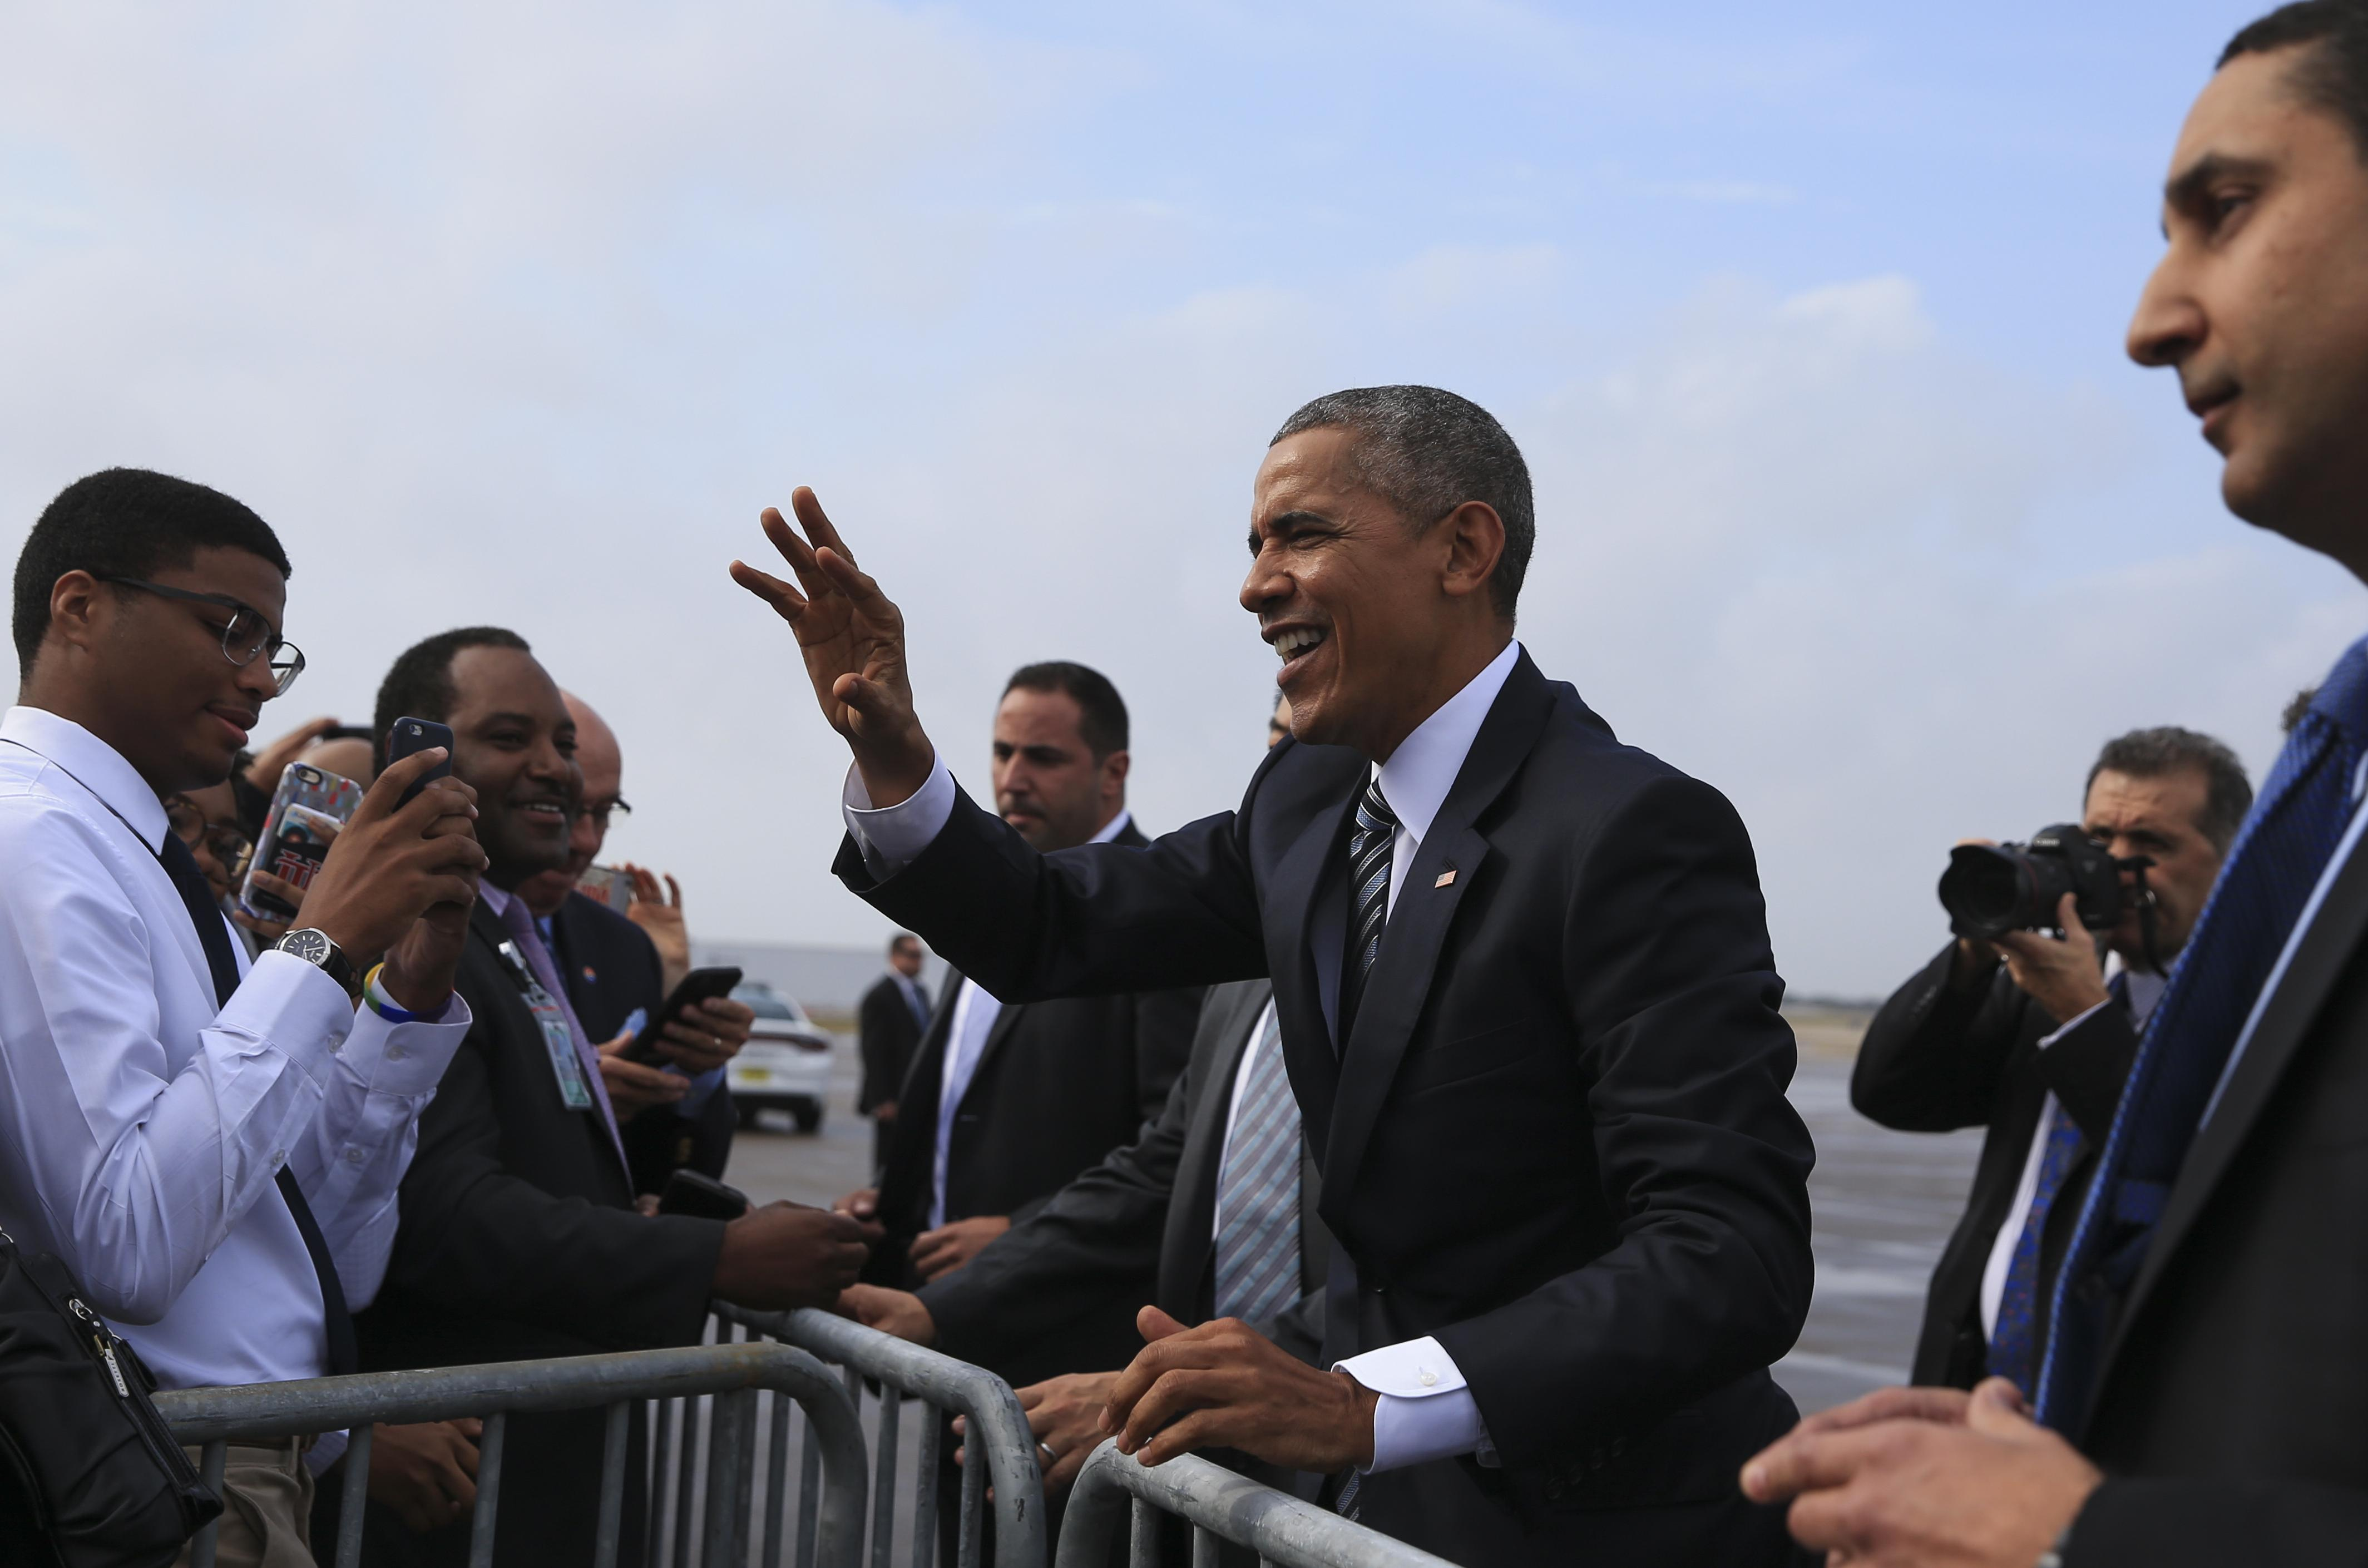 President obama defends terrorism strategy before handover to trump president barack obama greets supporters arrives in tampa fla on tuesday m4hsunfo